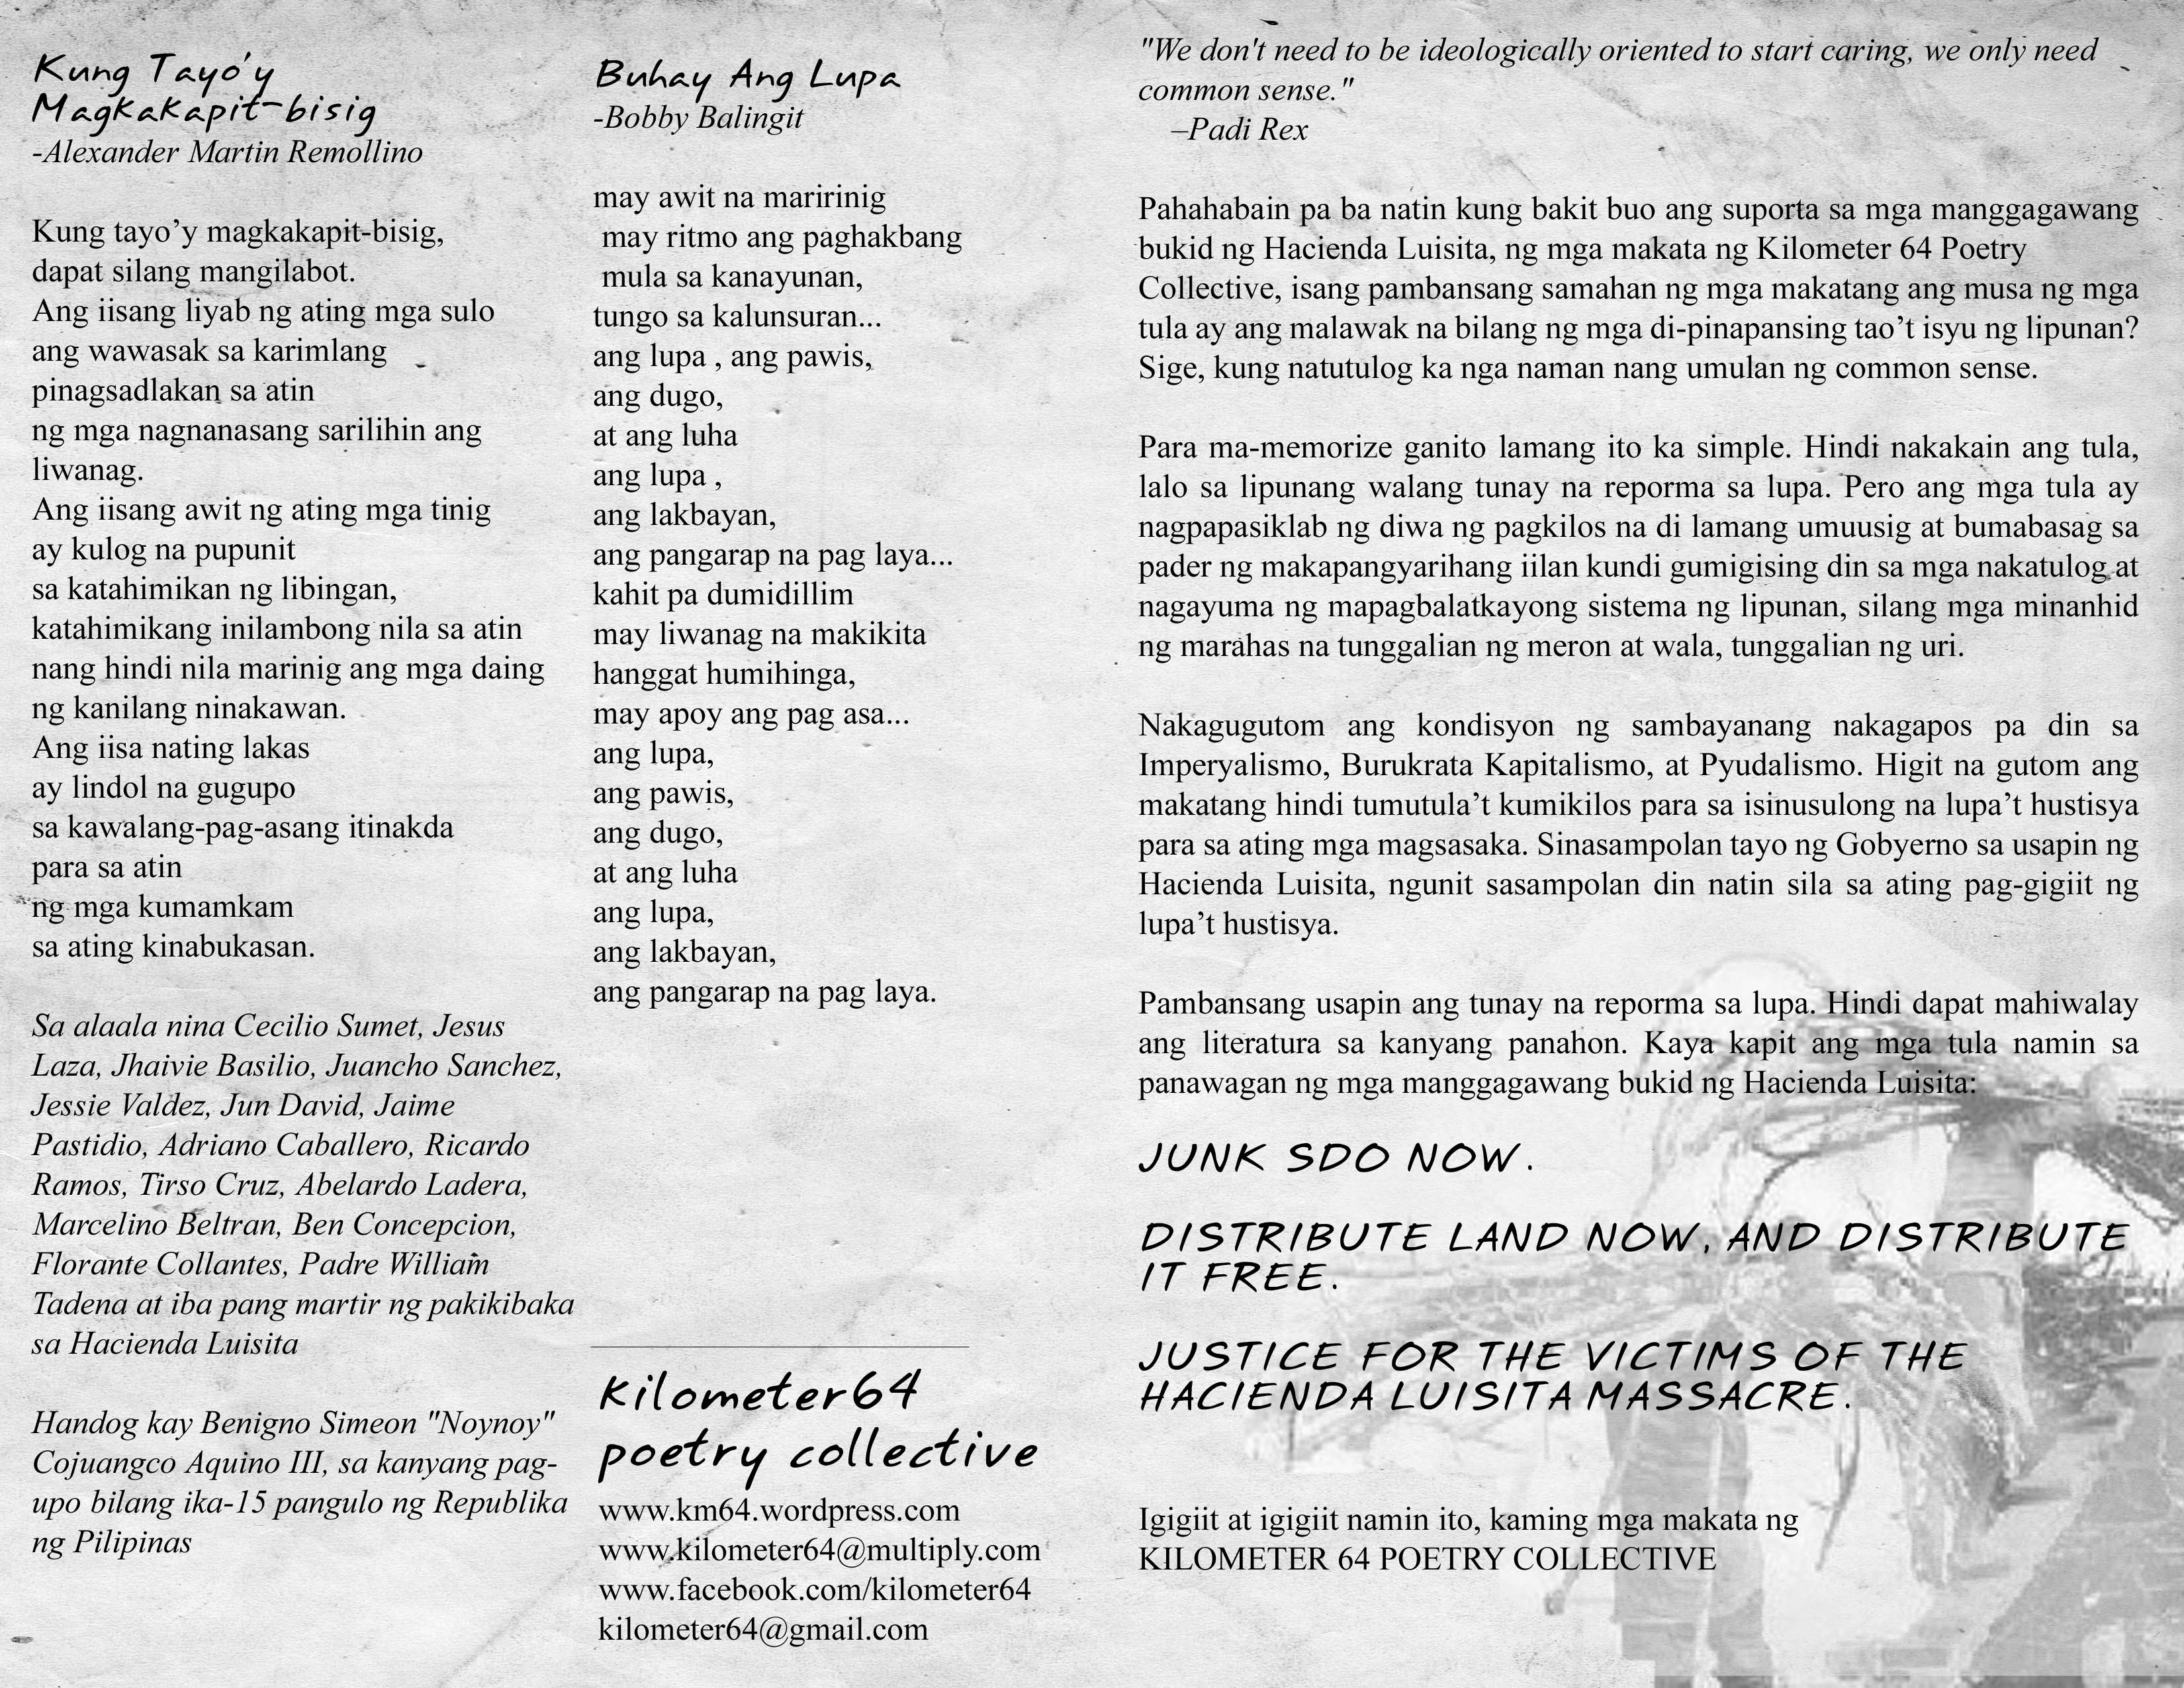 """hacienda luisita essay The up third world studies center organized a research workshop on 'violence, human rights and democracy in the philippines' i submitted a short essay in response to the workshop question: """"based on your knowledge of and experience in your locality, do you think that the duterte ."""